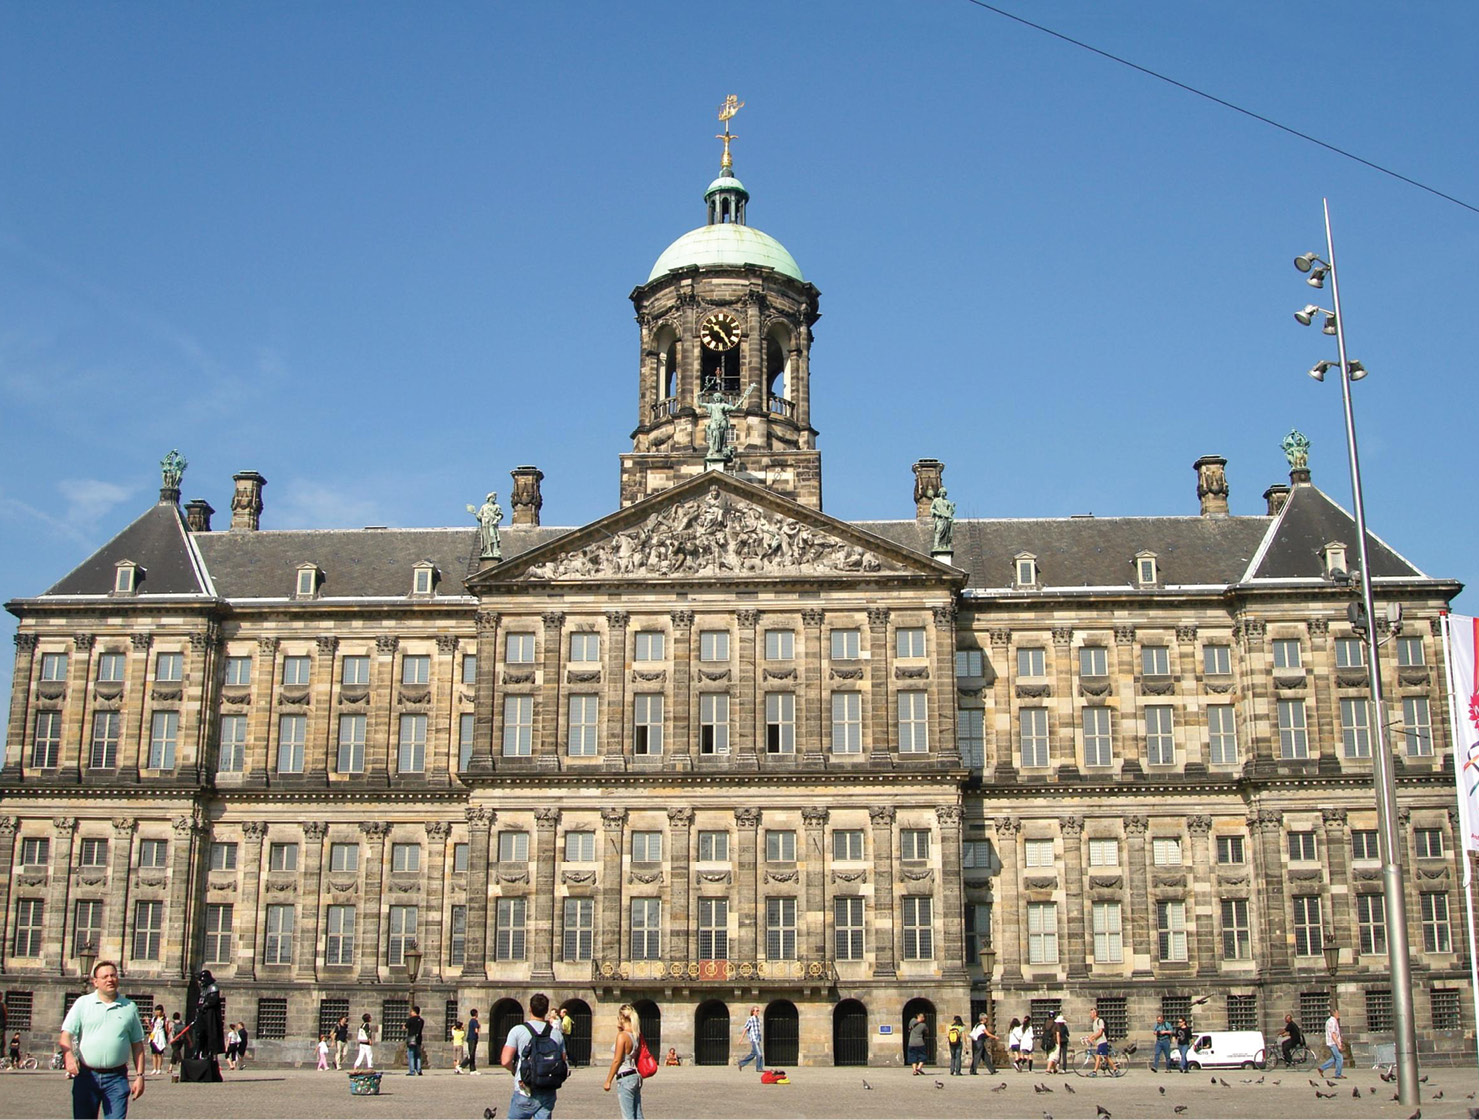 above The Royal Palace in Amsterdam was built in the 17th century and is decorated with carvings that exemplify the colonialism that was central to the power of the Dutch Republic at the time.